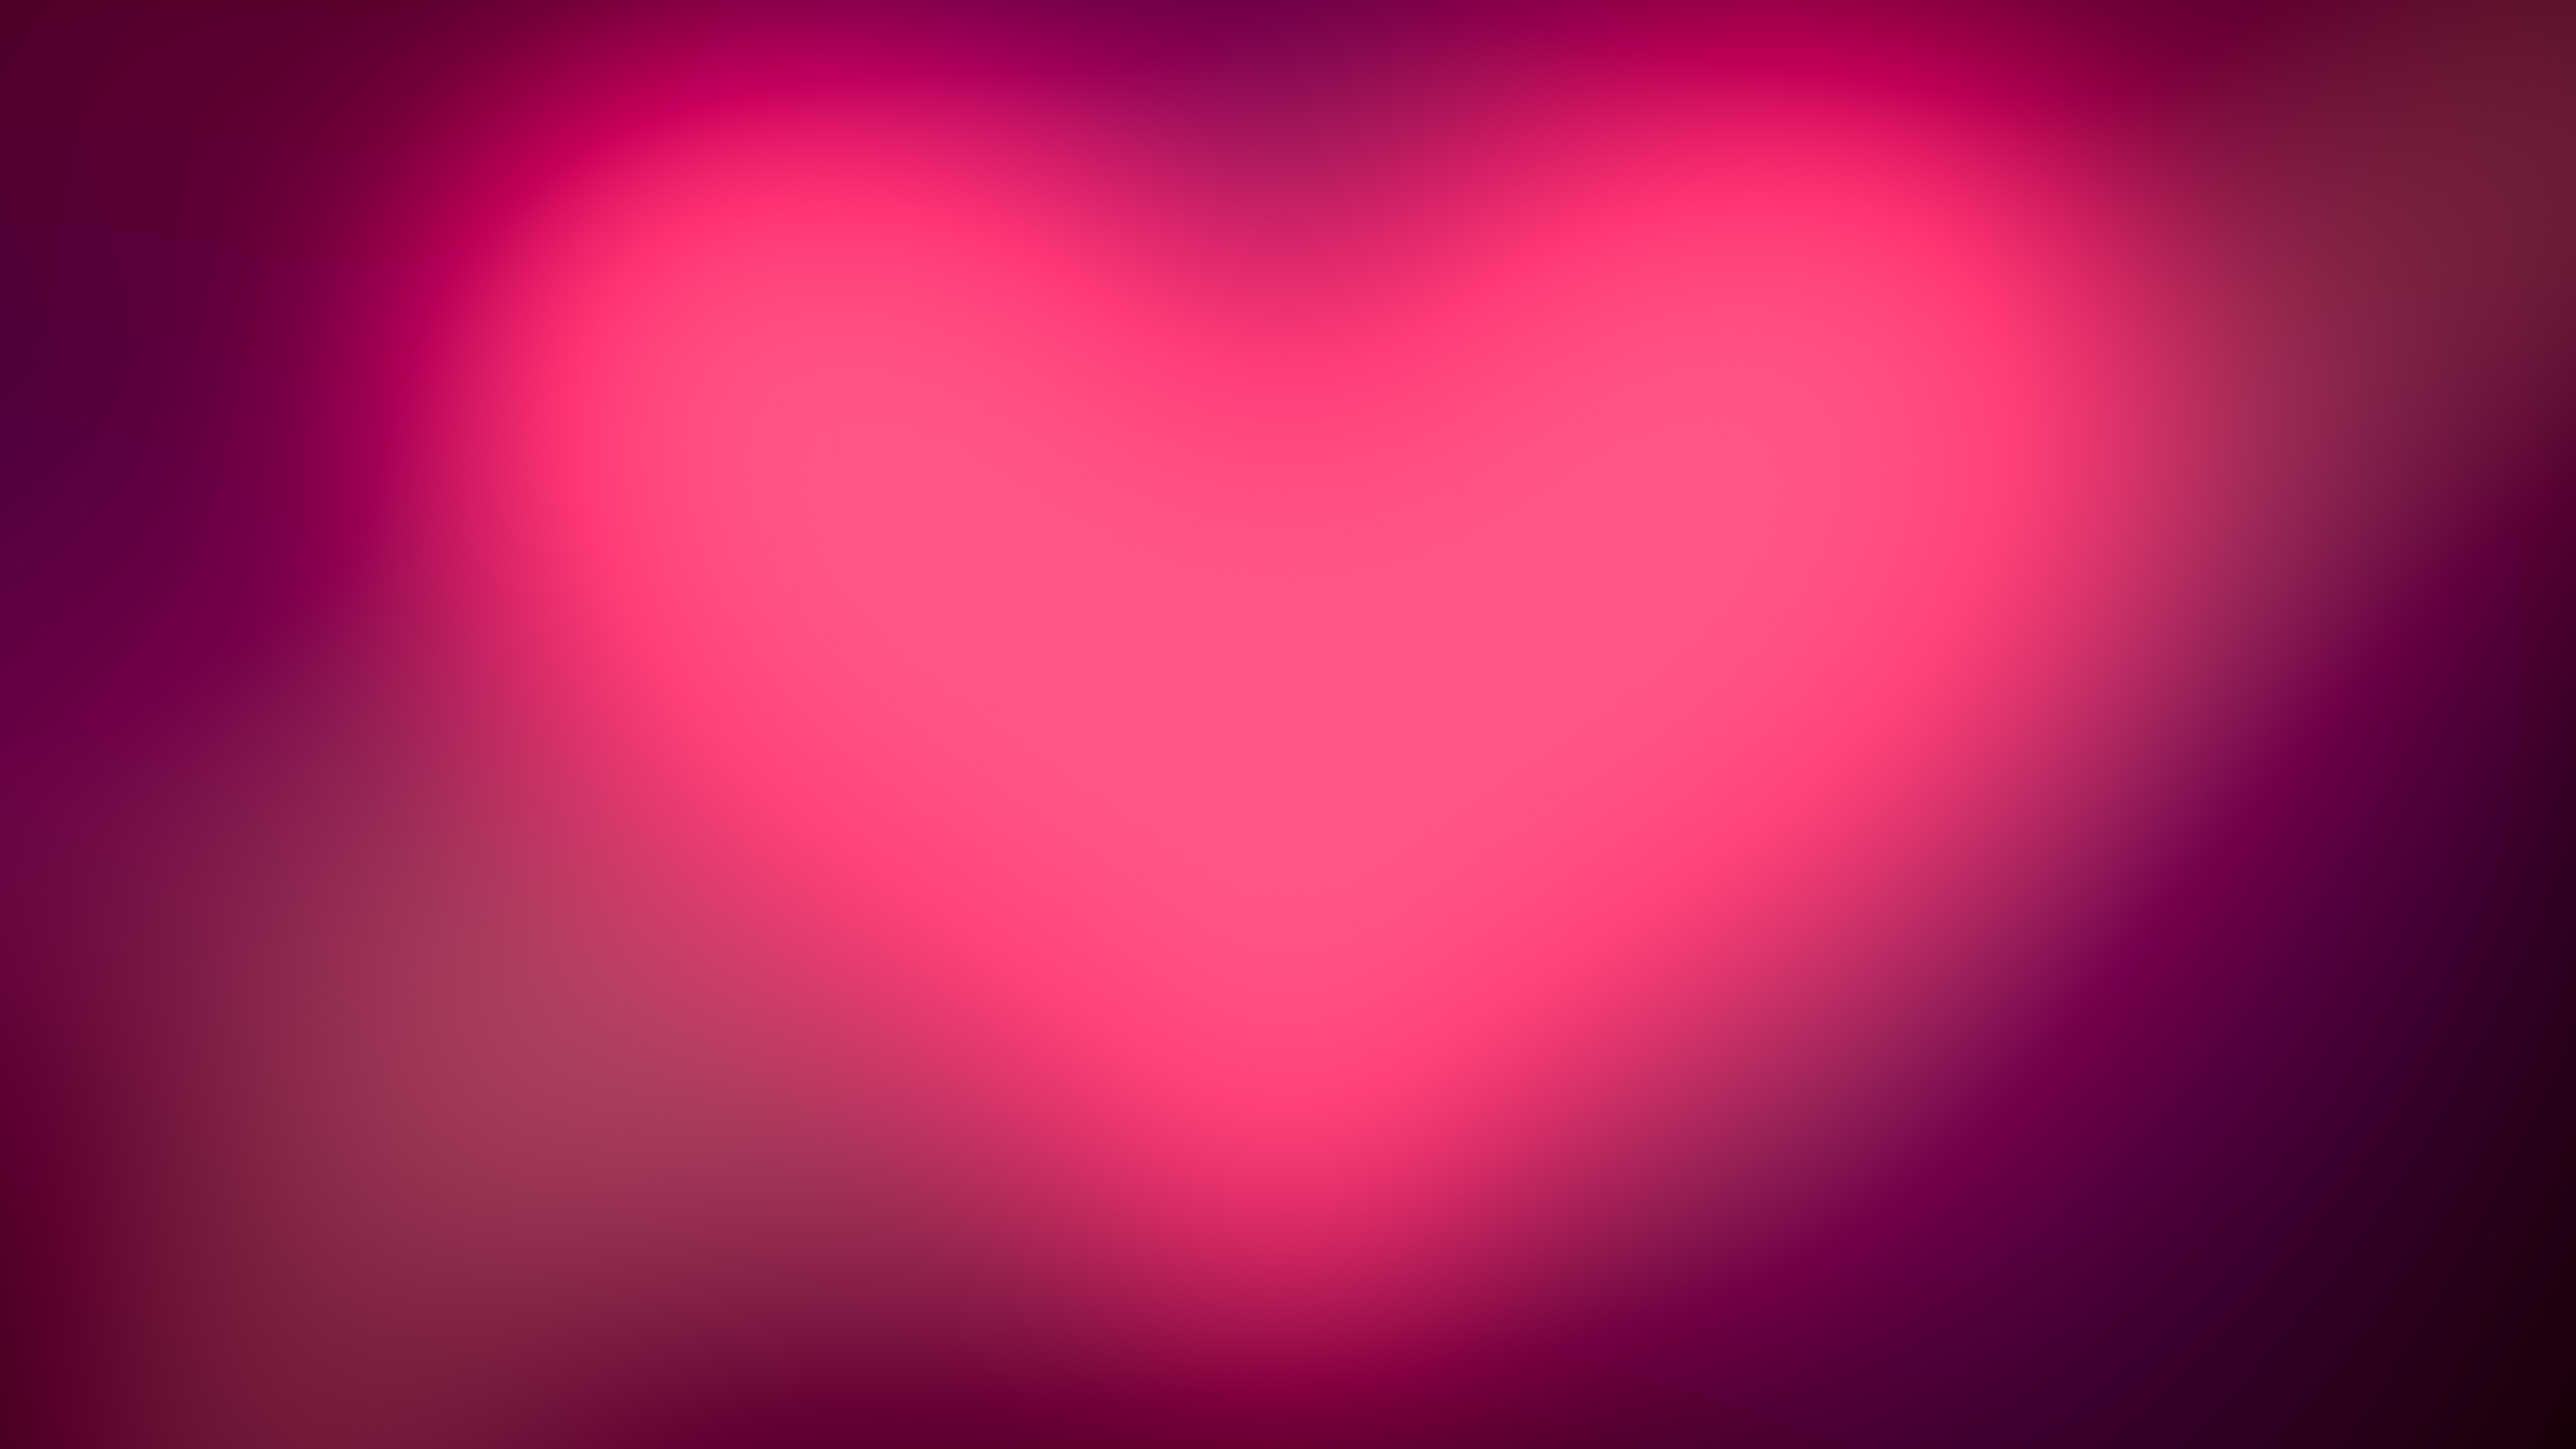 640x1136 Heart Abstract Minimalism Background IPhone 5,5c